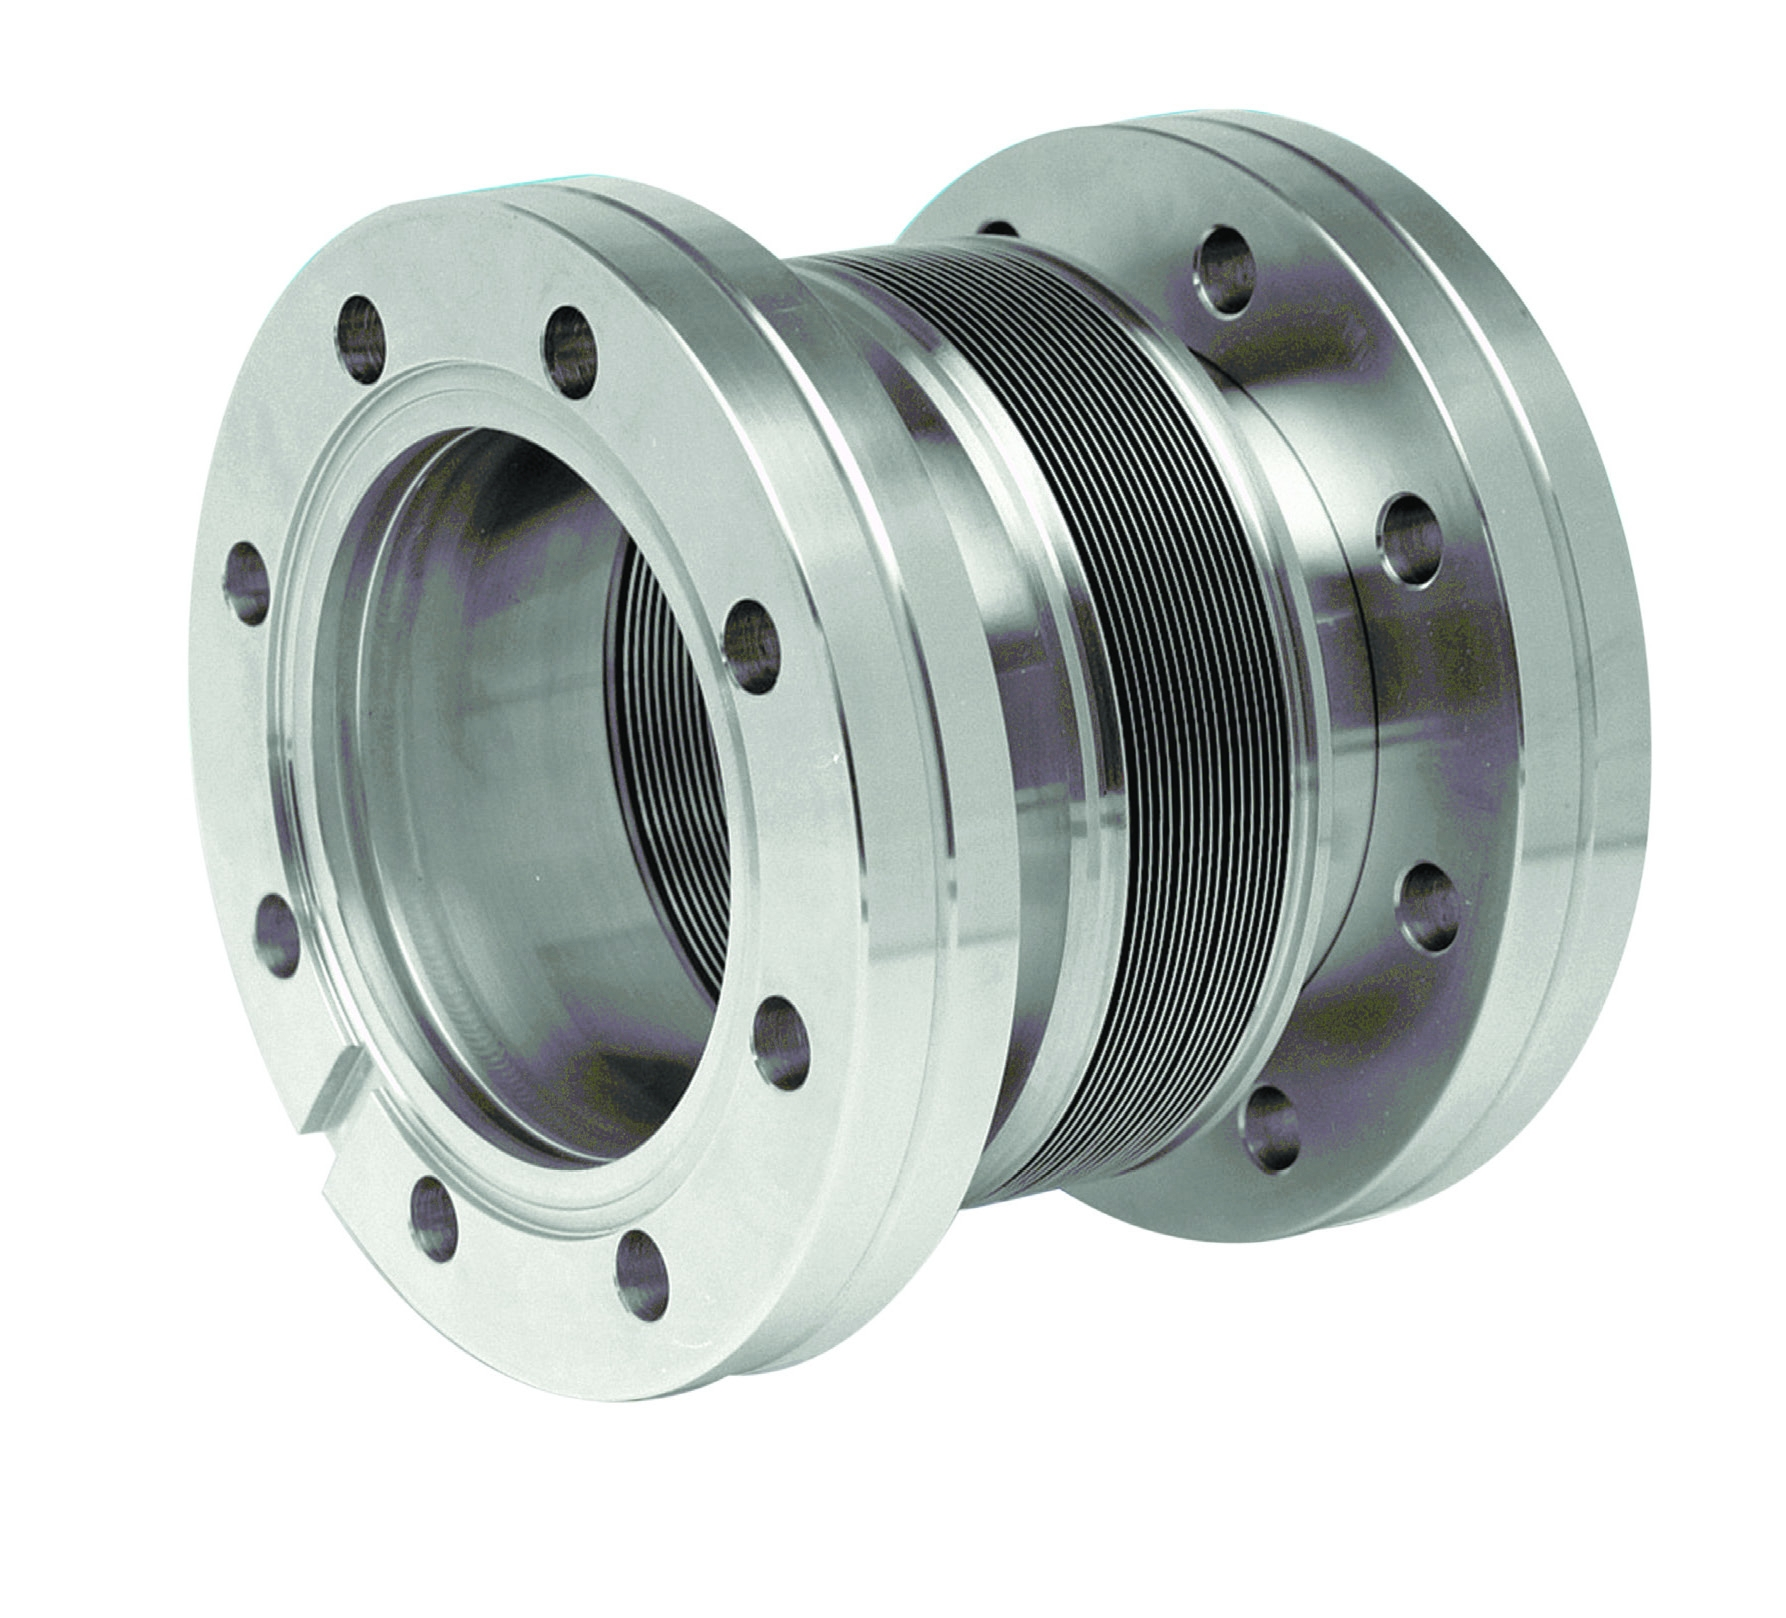 Edge welded bellow with DN150CF flanges, L = 125 - 325mm